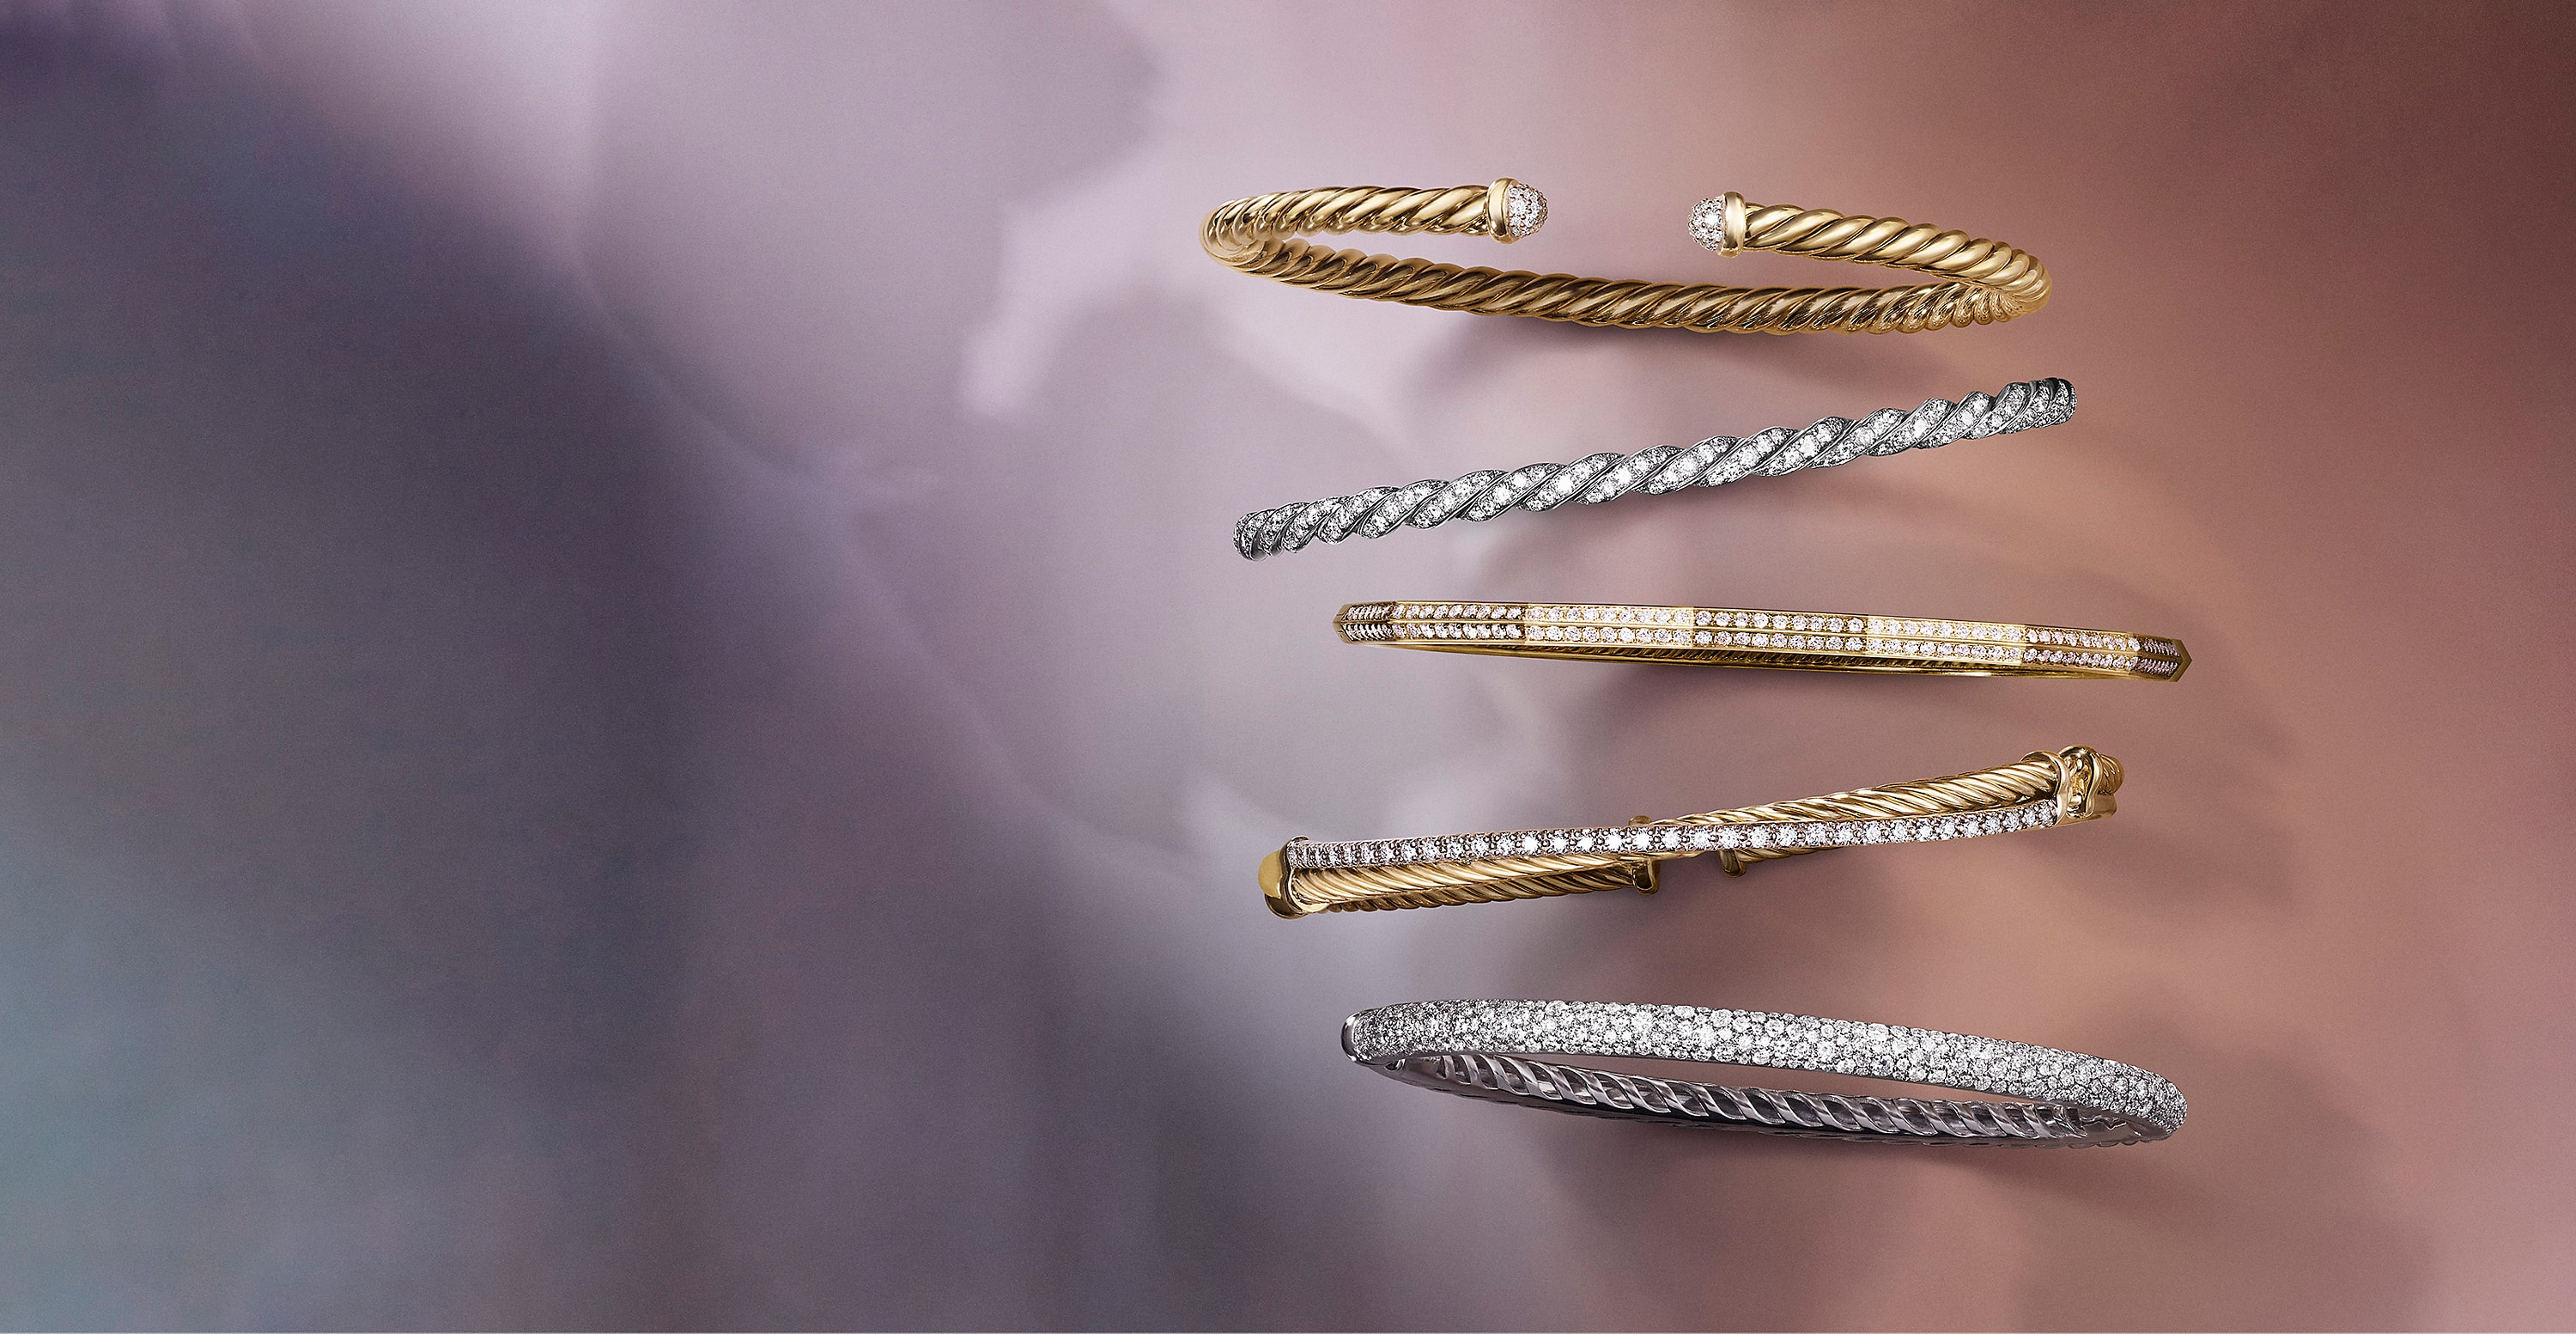 A color photo shows five David Yurman bracelets placed in a vertical stack atop a pink background with soft shadows. Two of the women's bracelets are crafted from 18K white gold with pavé white diamond. The other bracelets are crafted from 18K yellow gold with pavé white diamonds.